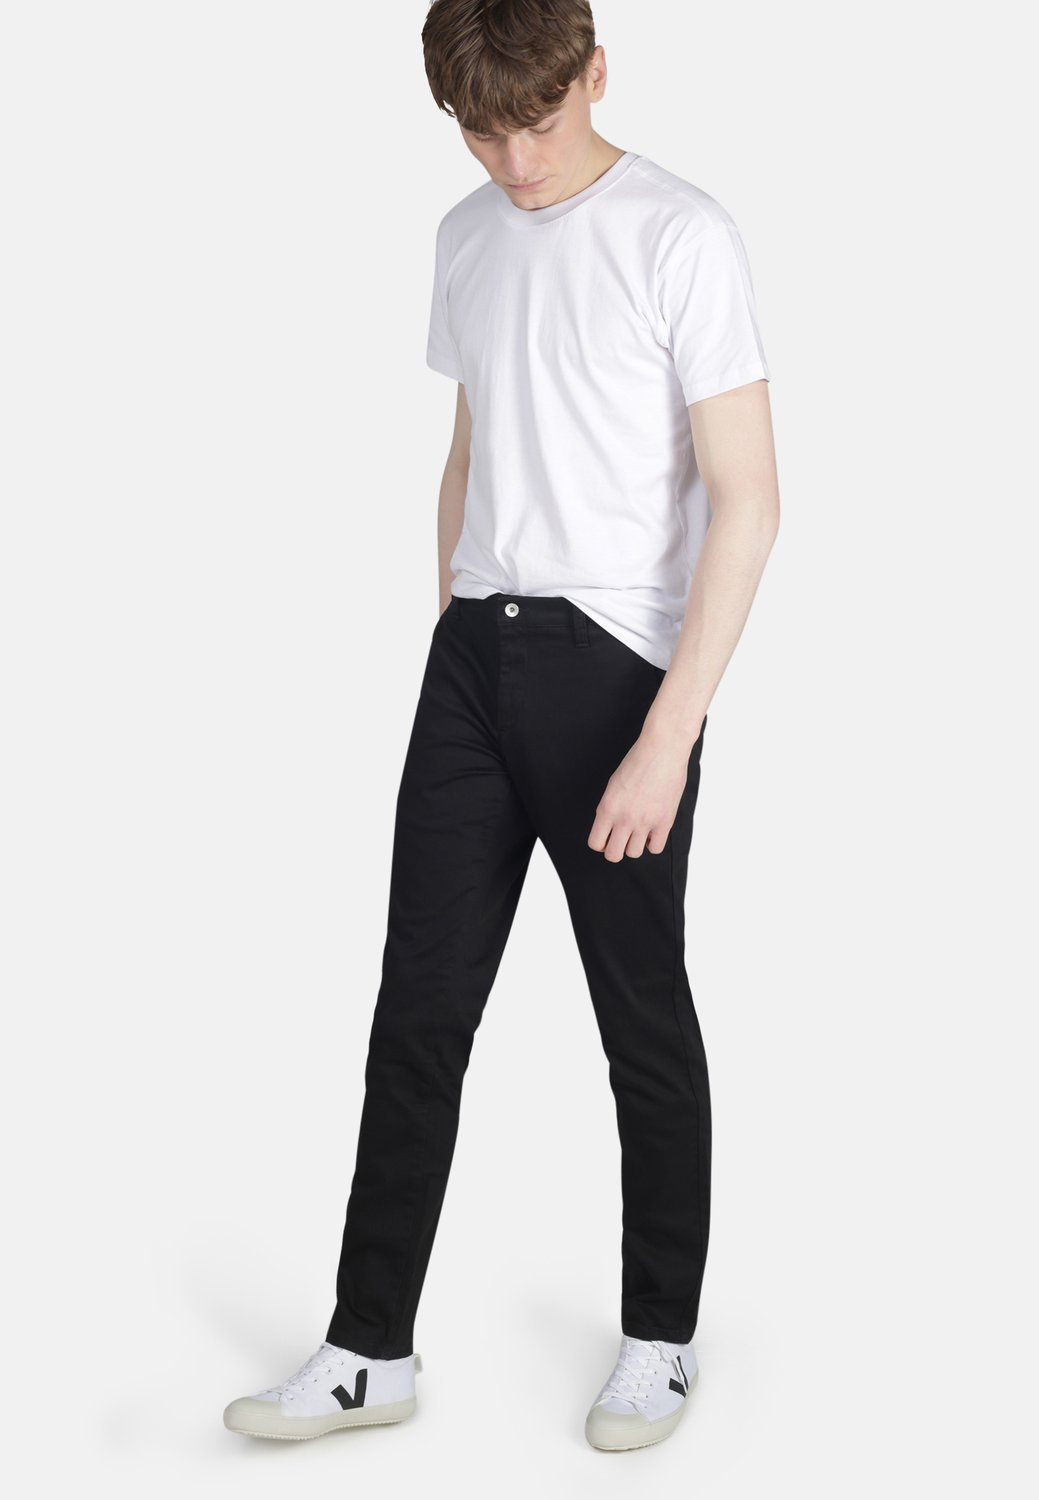 Jeans - Black Organic Cotton Chino